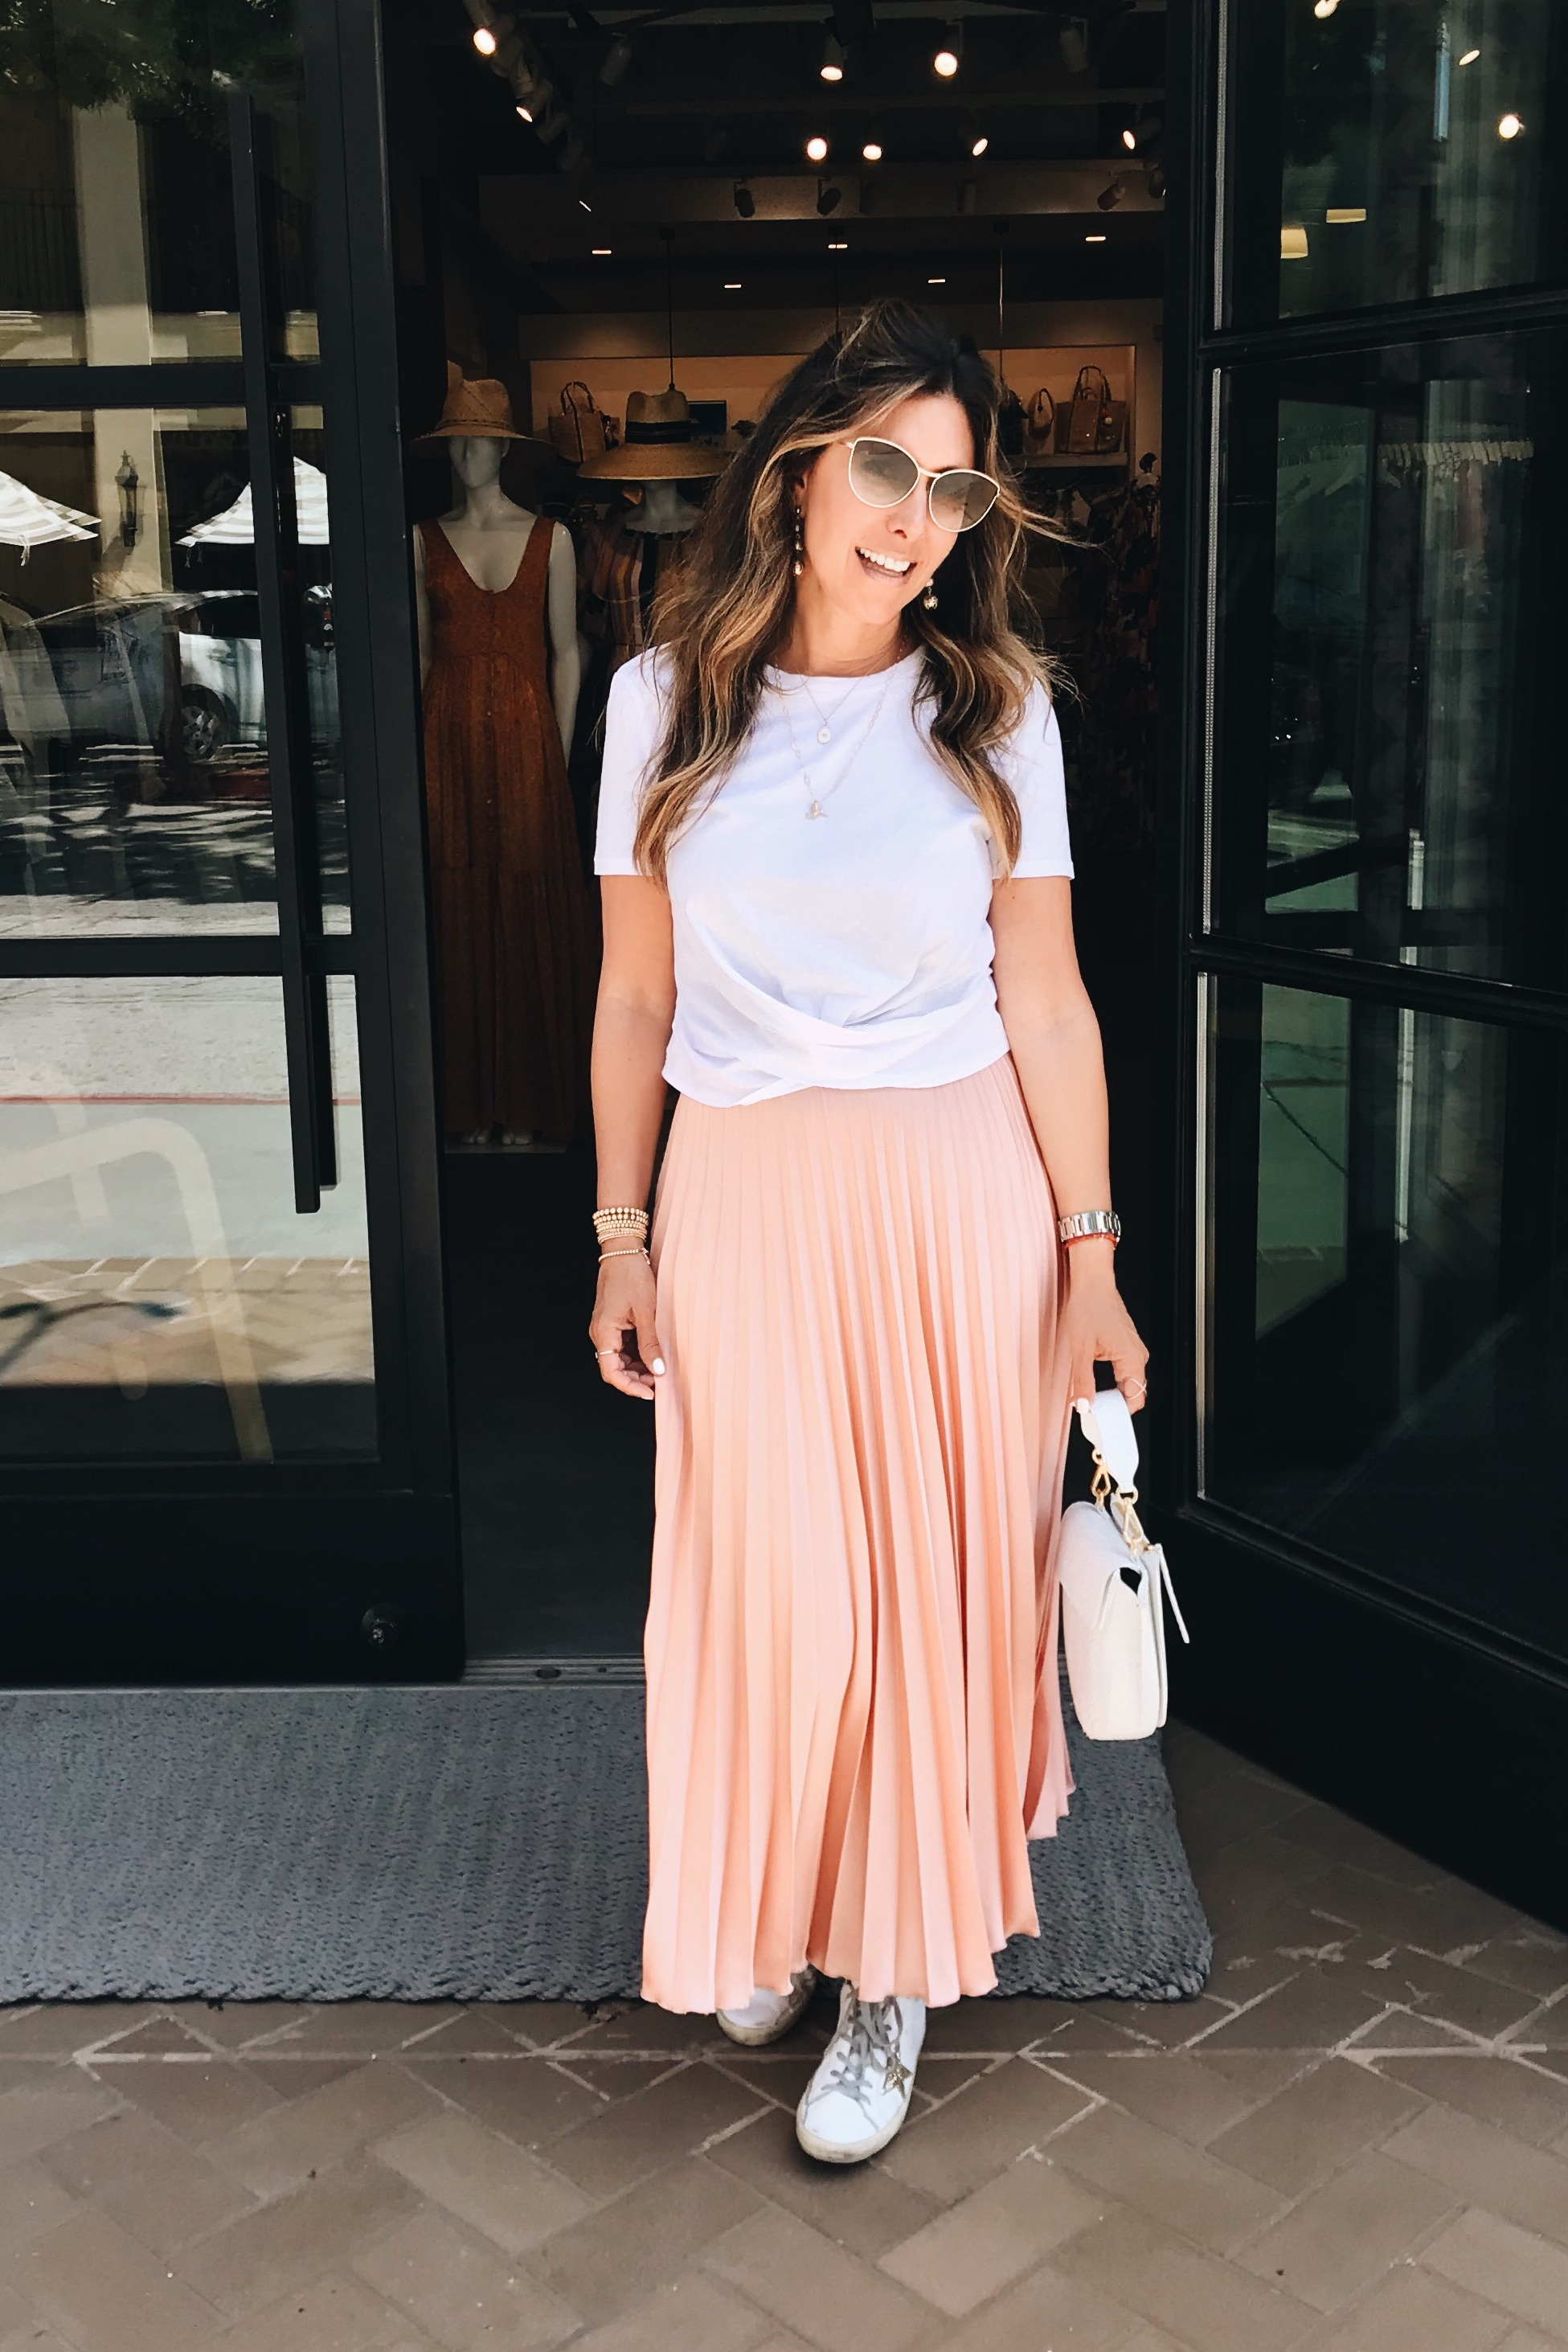 MM_ZARA_Pink+Skirt+and+Wrap+Tee+002.jpg